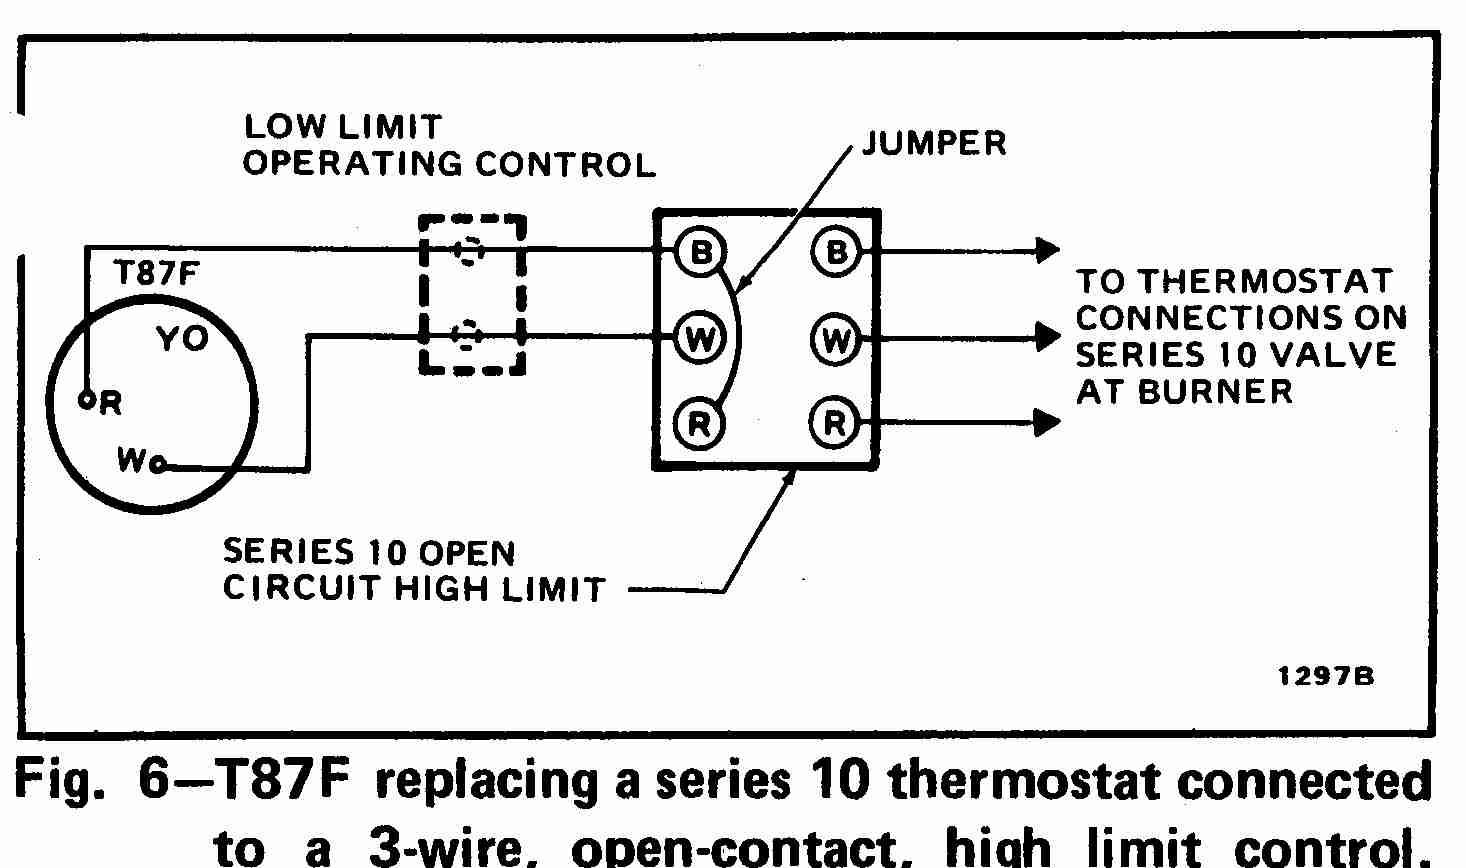 TT_T87F_0002_3WHL_DJF room thermostat wiring diagrams for hvac systems imit boiler thermostat wiring diagram at sewacar.co